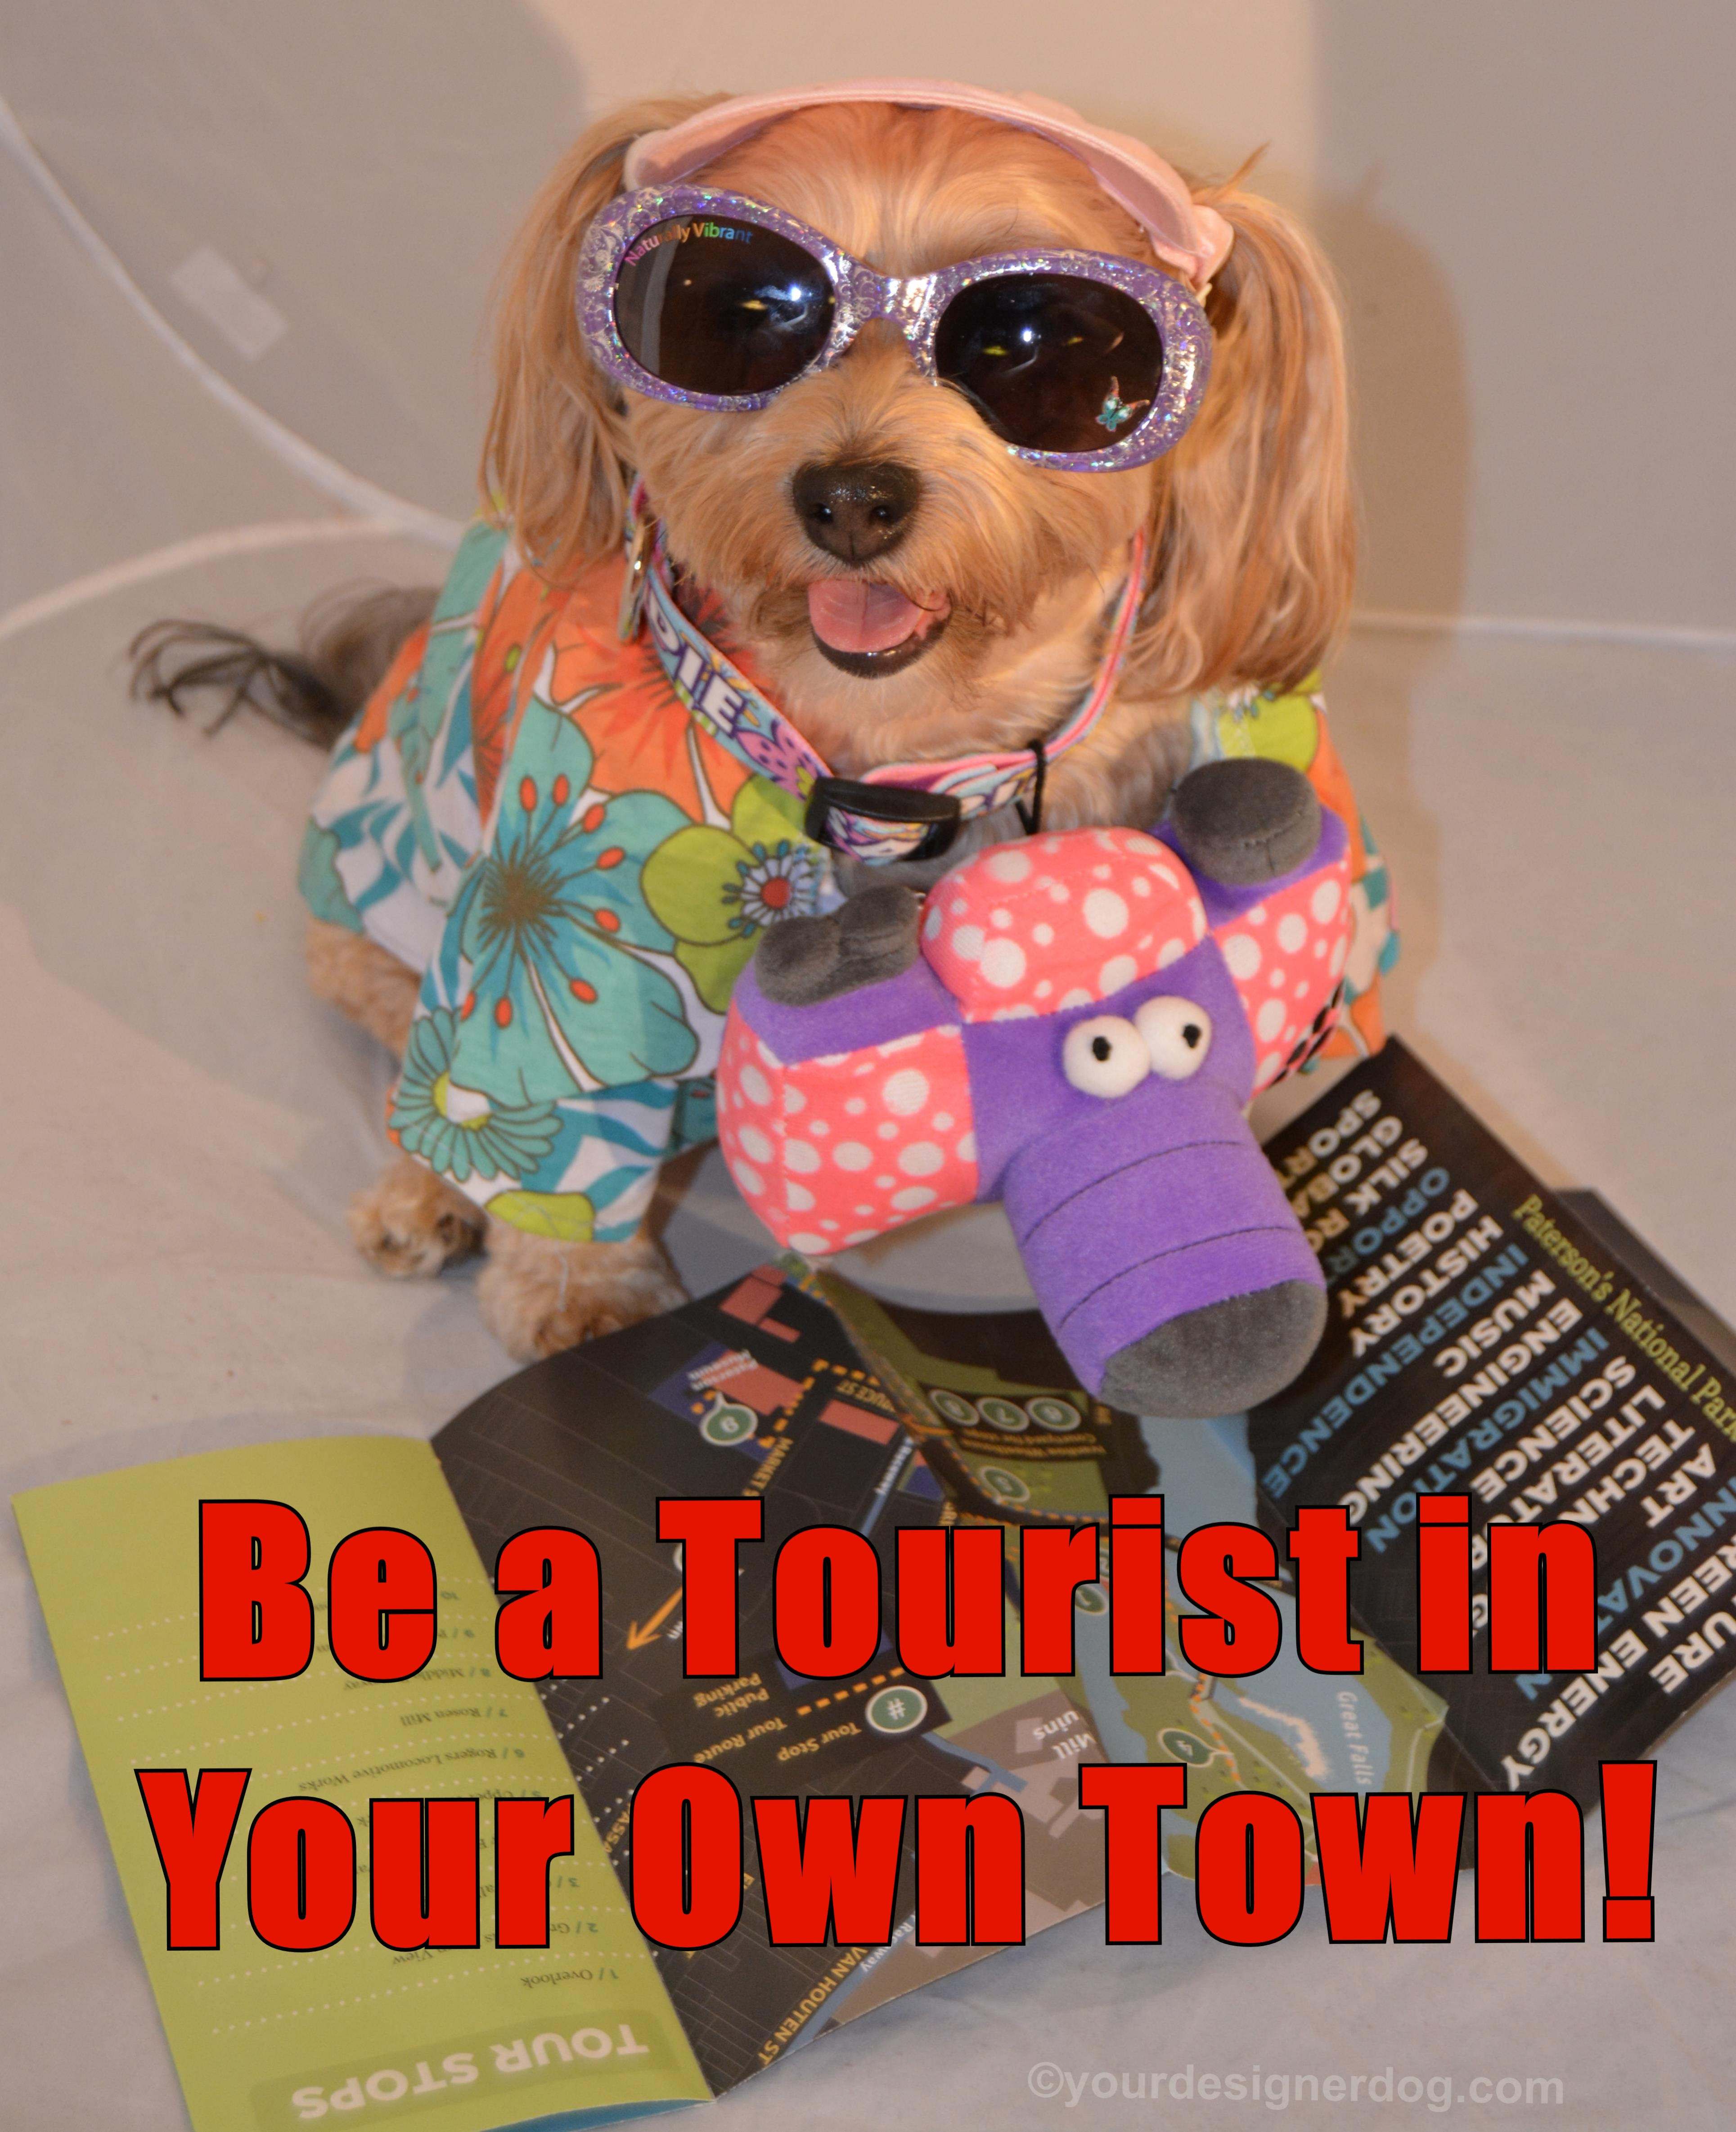 Be a Tourist in Your Own Town!